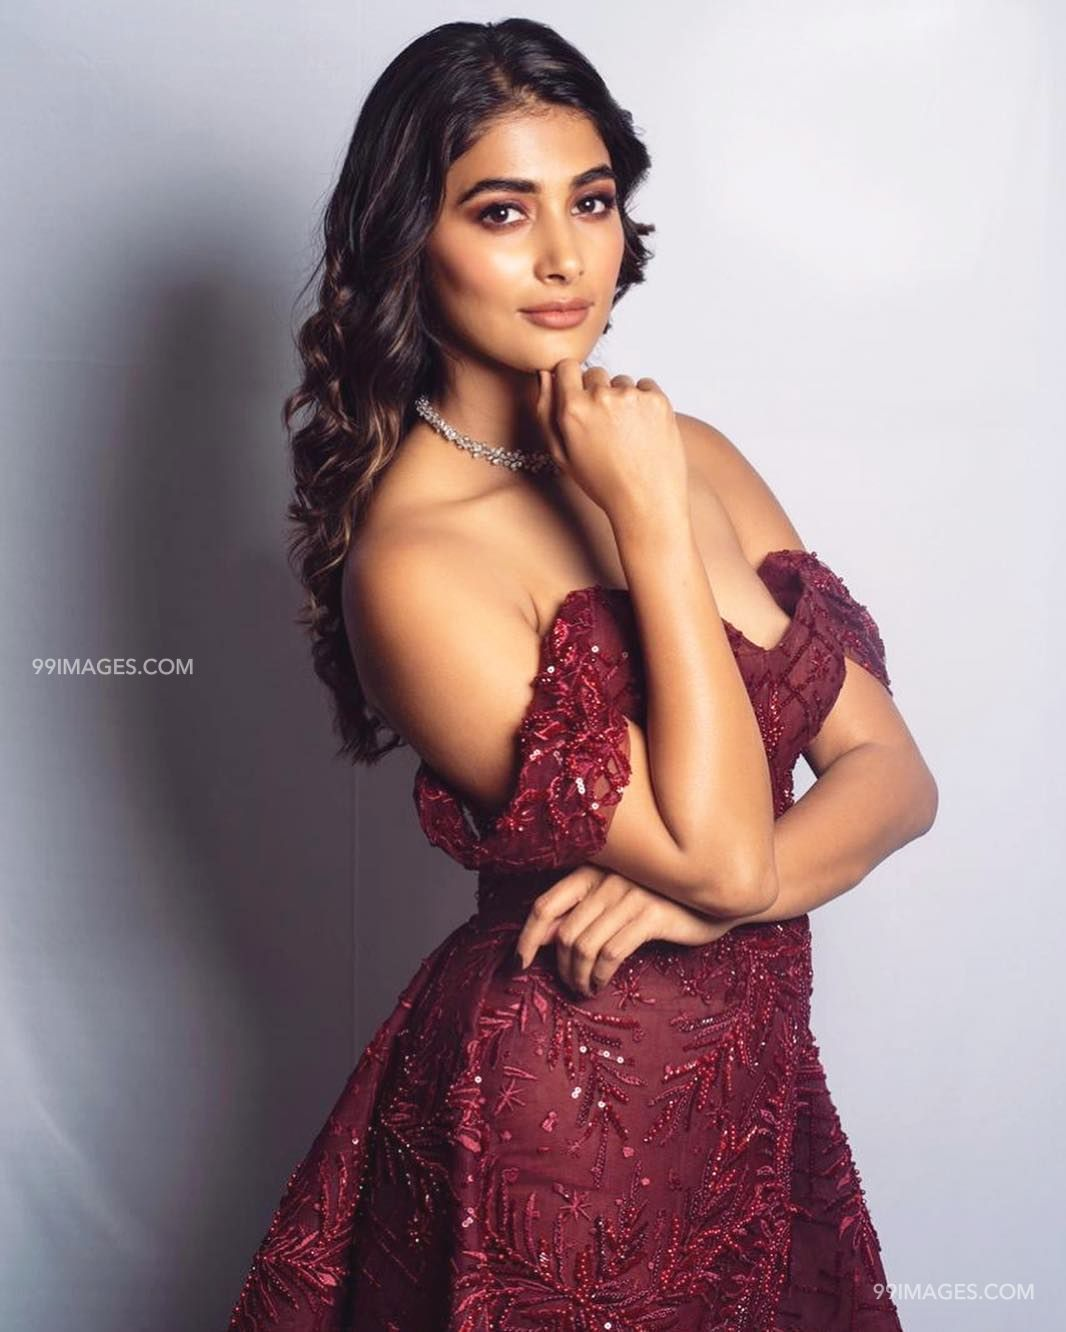 Pooja Hegde Beautiful HD Photoshoot Stills & Mobile Wallpapers HD (1080p) (20848) - Pooja Hegde